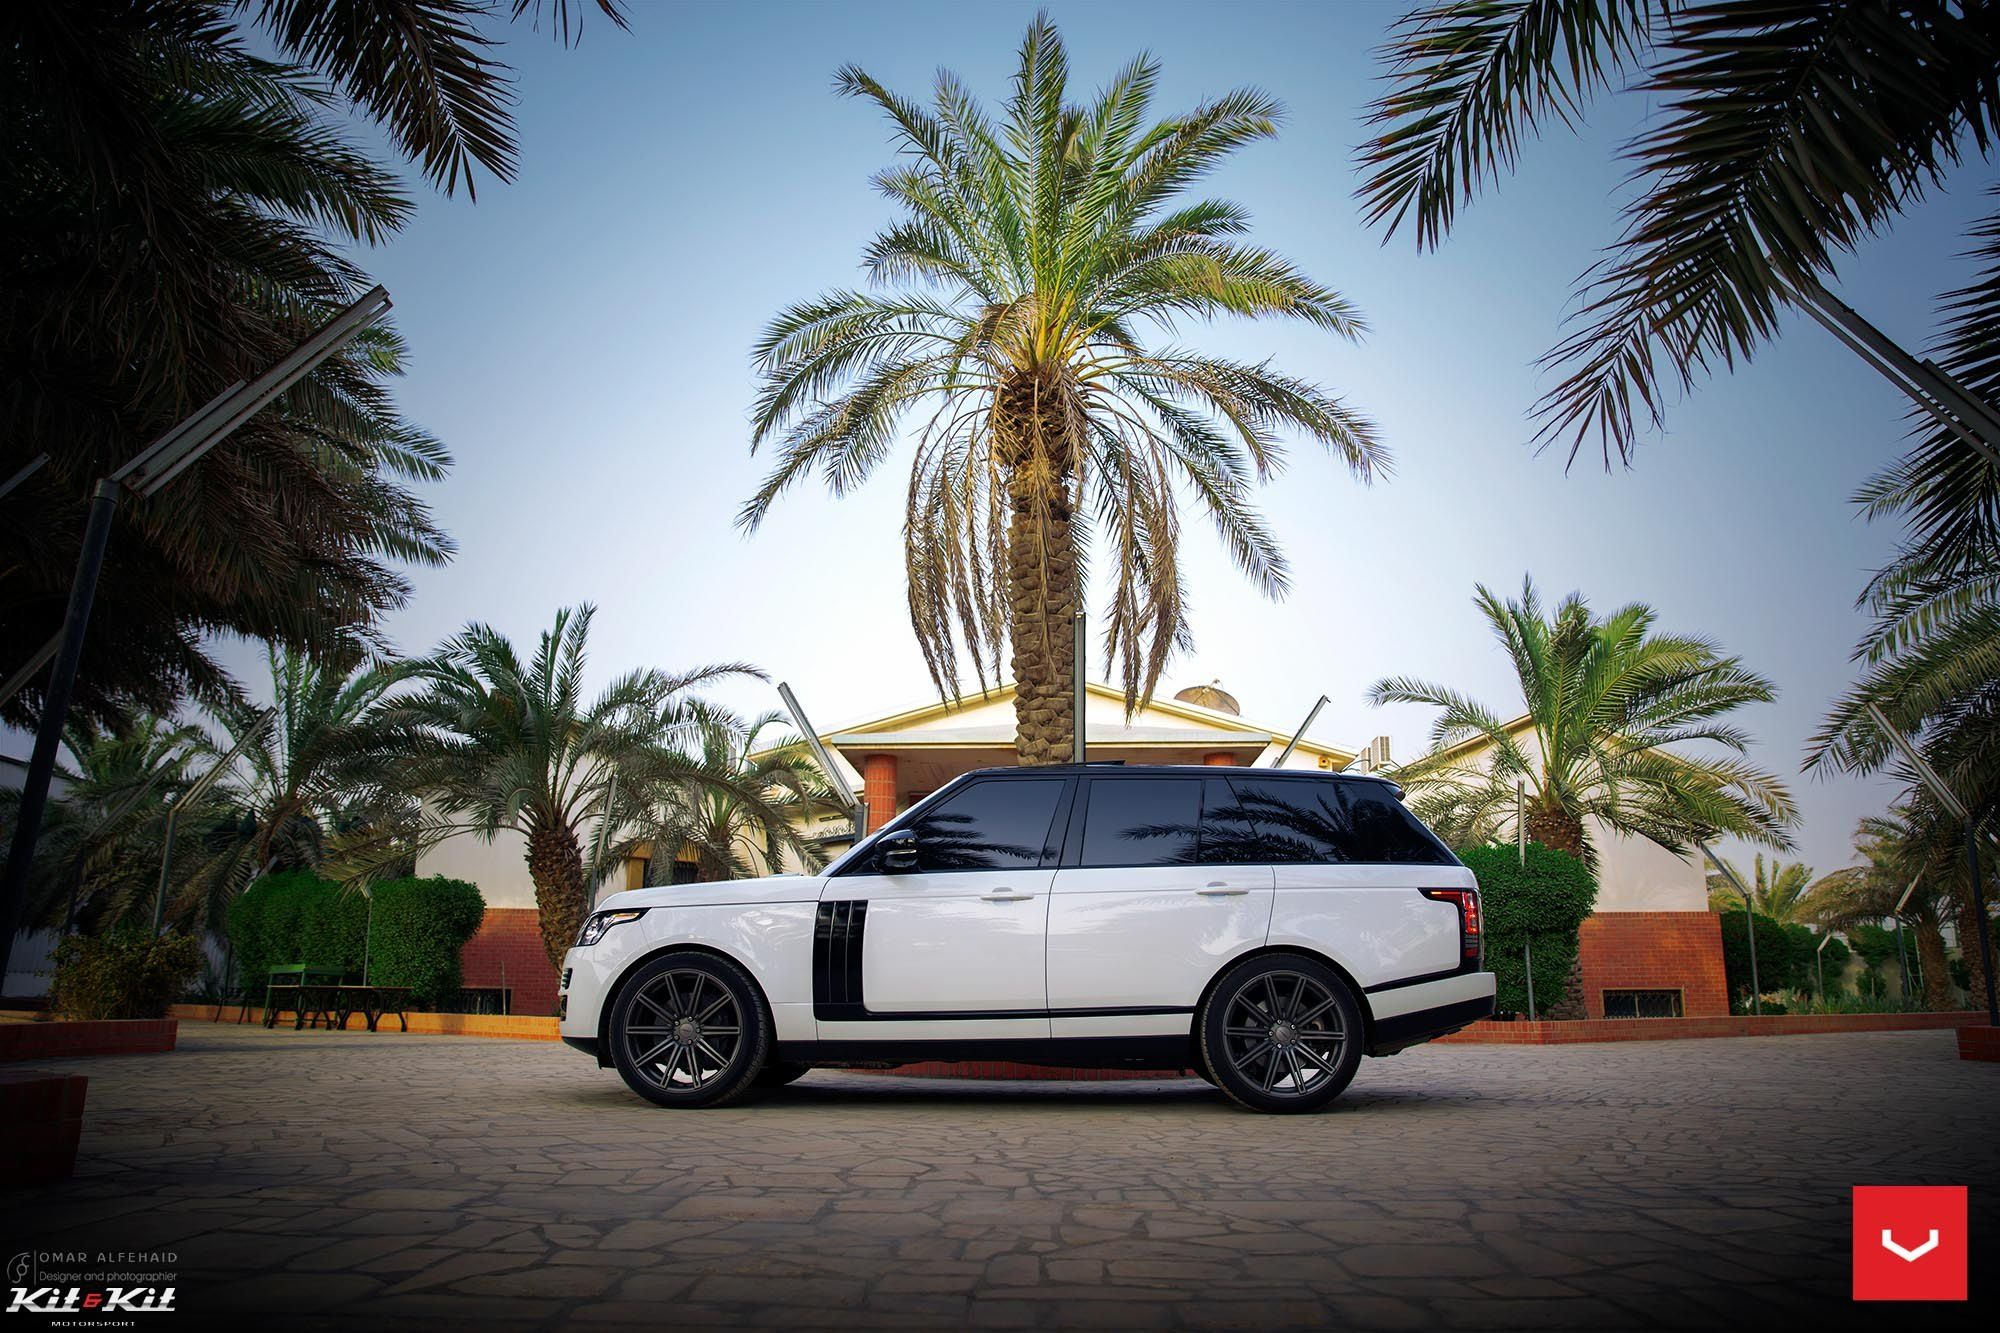 Classy Vossen Wheels on a Range Rover Vogue